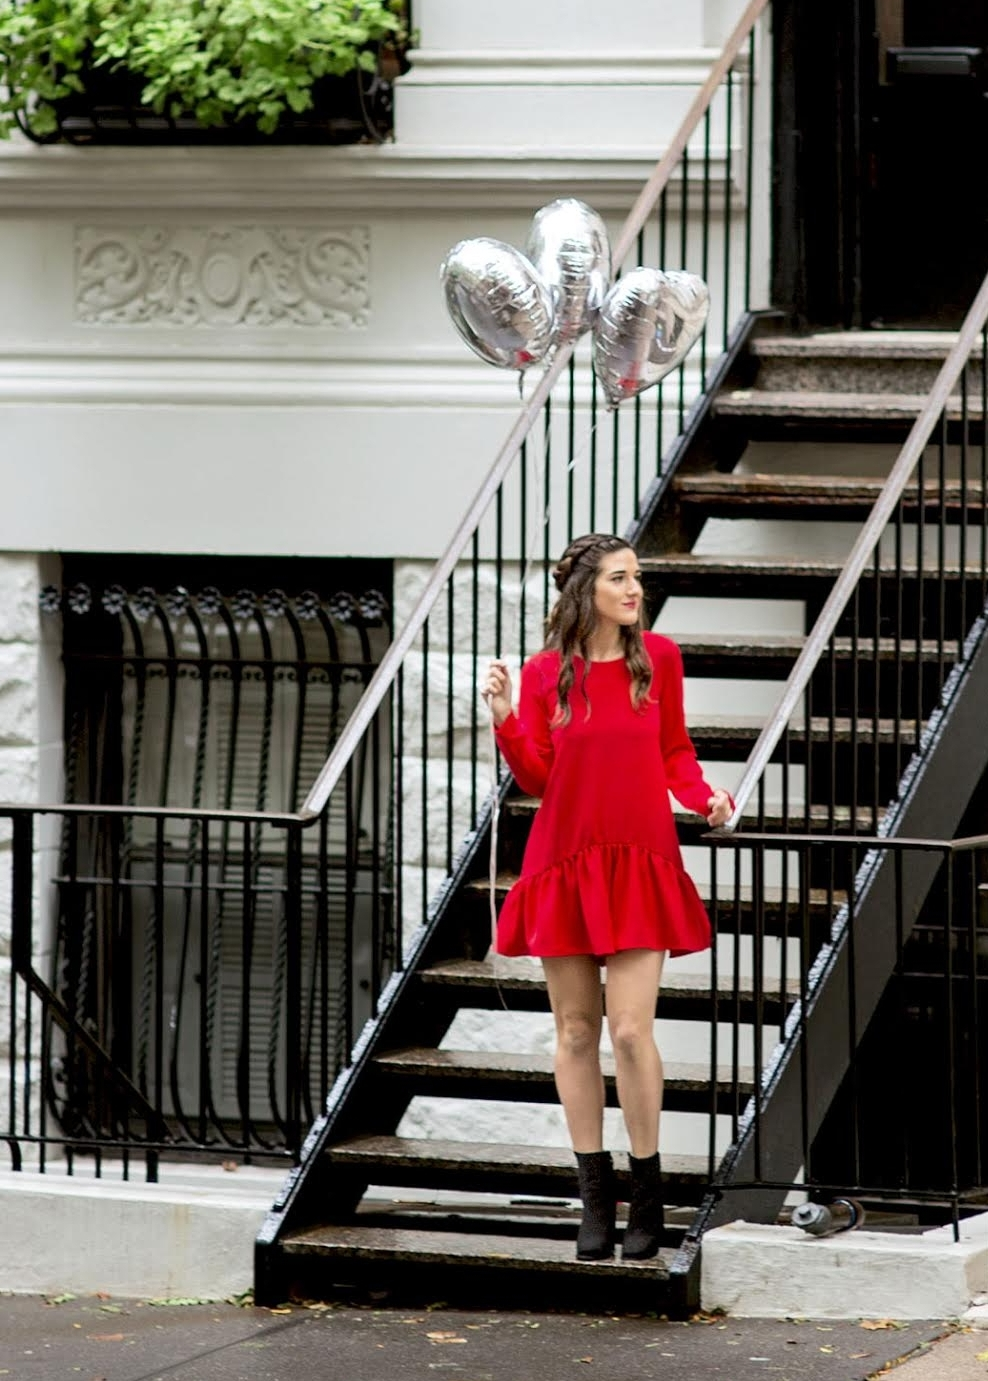 My Birthday Look Red Romper Black Booties Louboutins & Love Fashion Blog NYC Street Style Blogger Esther Santer M4D3 Shoes Trendy Outfit Pretty Beautiful Look What To Wear Shop Silver Photoshoot Balloons Fun City Lifestyle Girl Dress Women Hair Braids.jpg